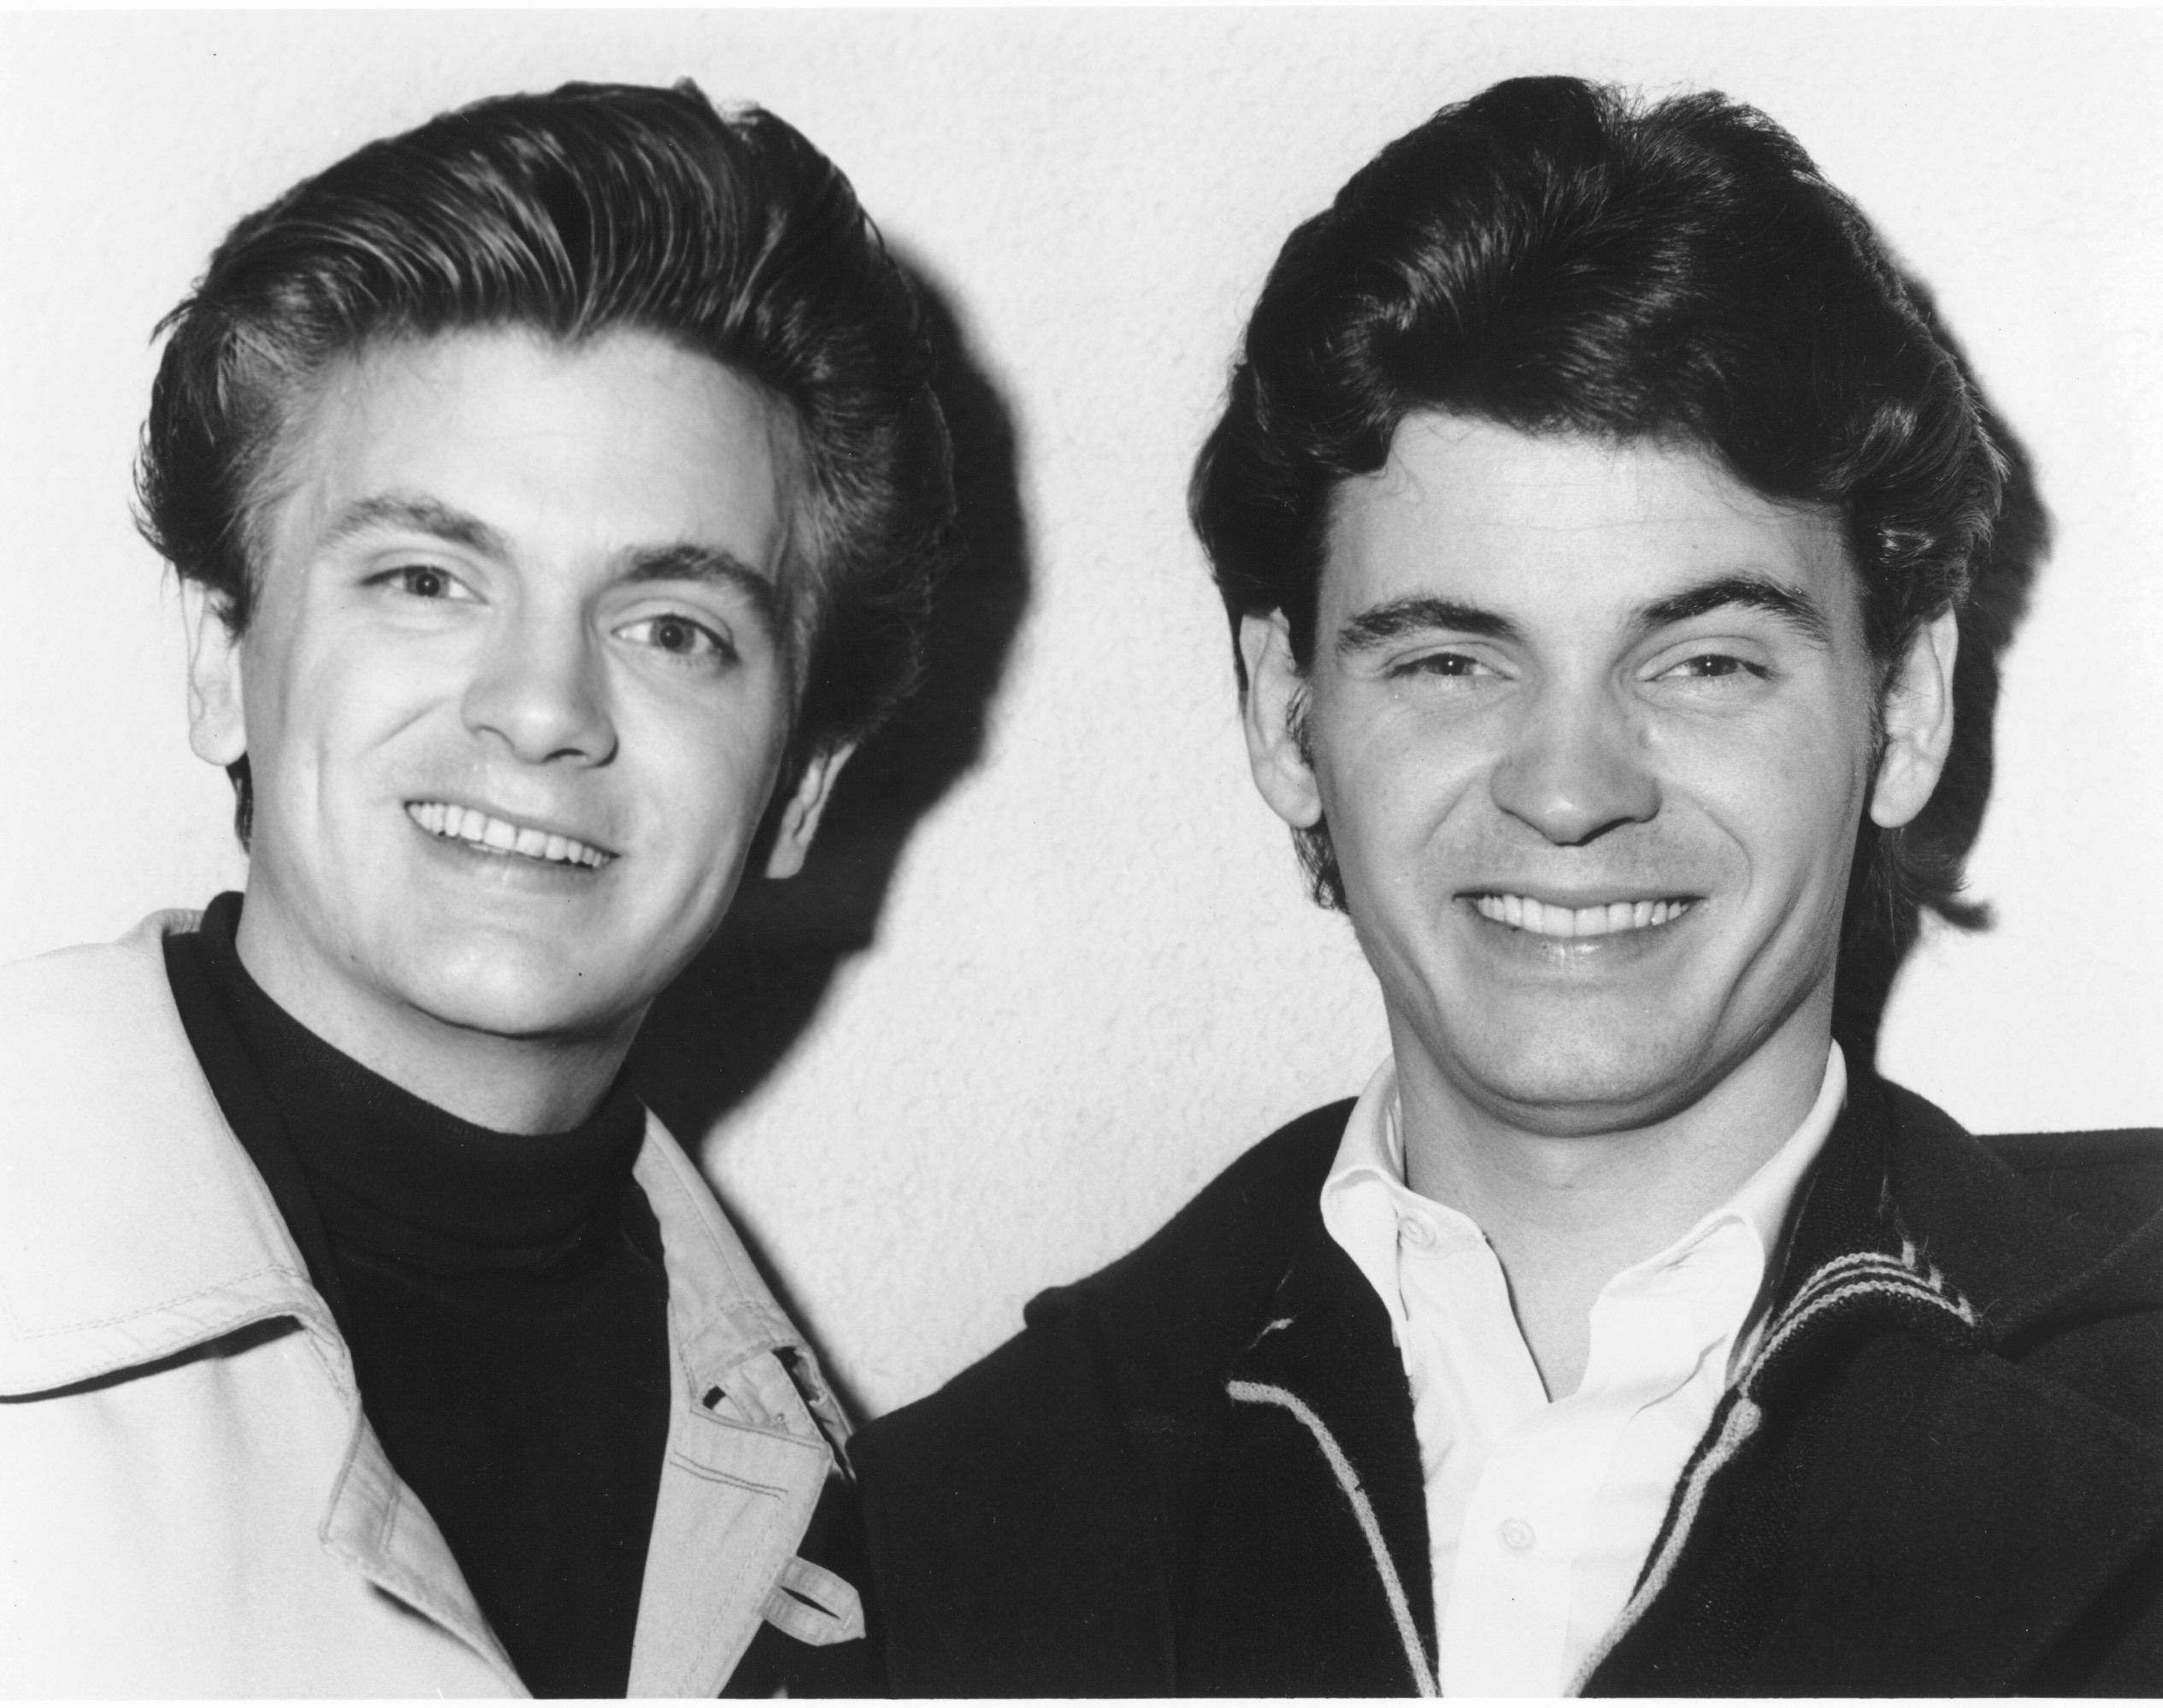 R.I.P. Phil Everly